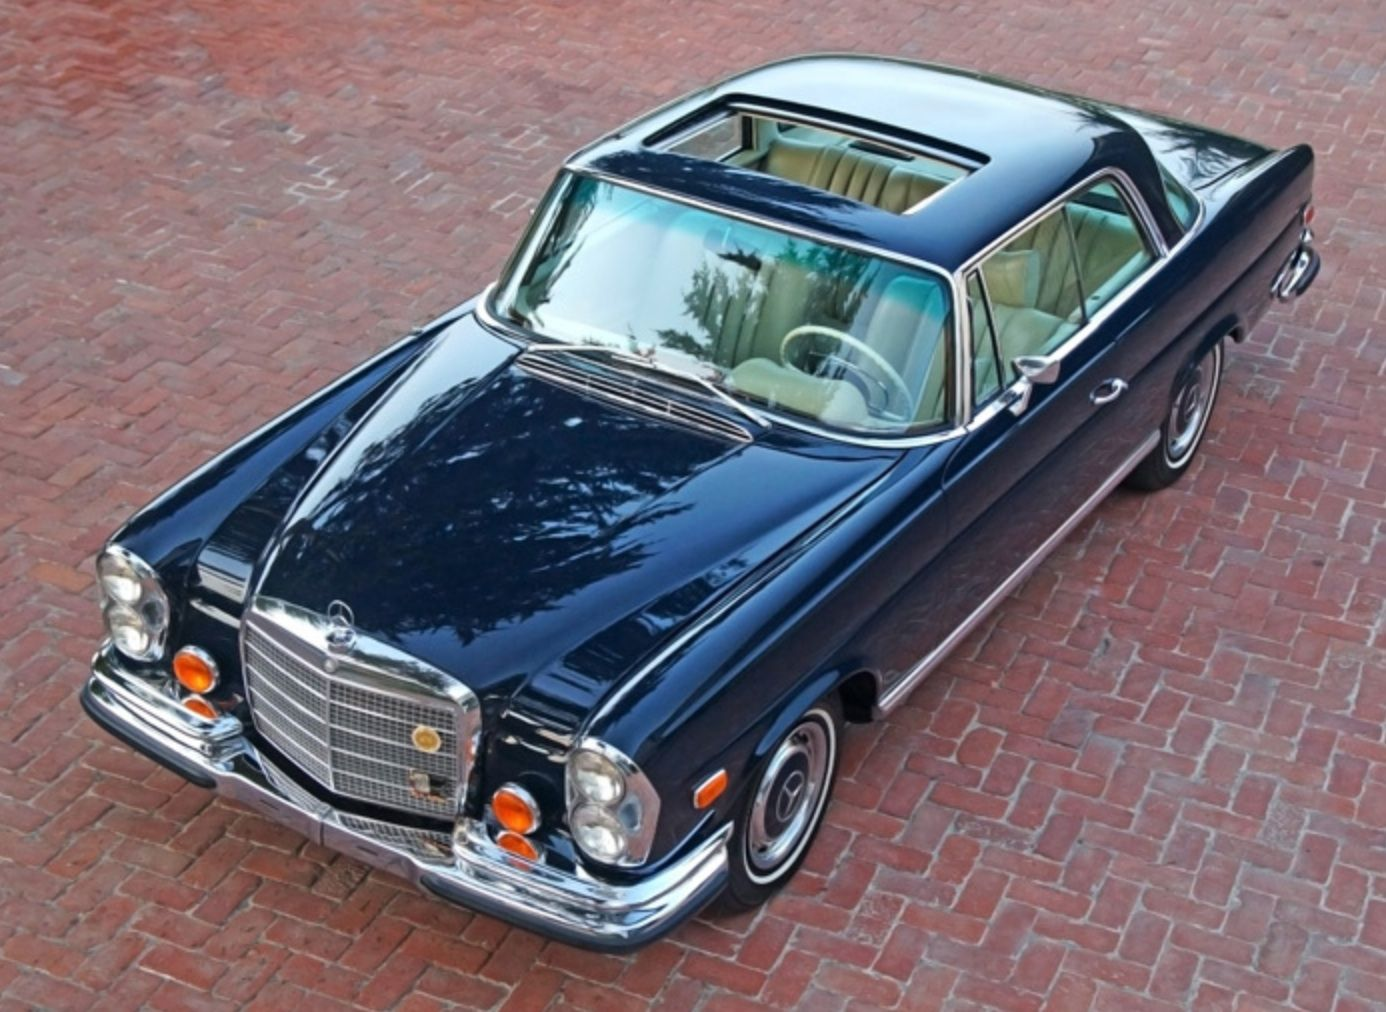 Maybach Dealership Near Me >> 1971 Mercedes-Benz 280SE 3.5 Coupe #MercedesBenzofHuntValley | Mercedes-Benz of Hunt Valley ...